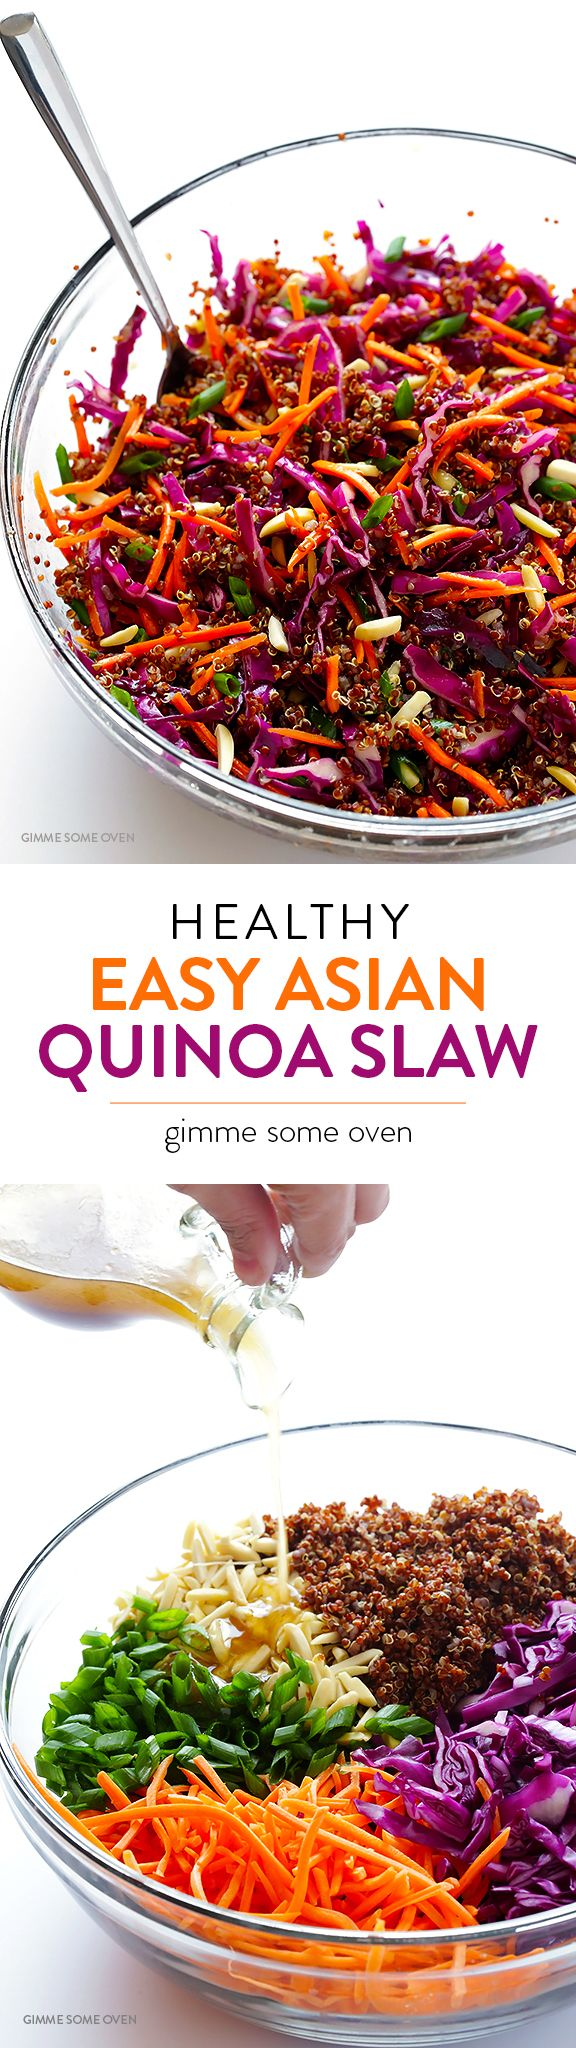 and gimmesomeoven com great flavor  Quinoa vegan   shoes easy    cricket Salad full to asics naturally Asian and and of quick gluten free  Easy usa make